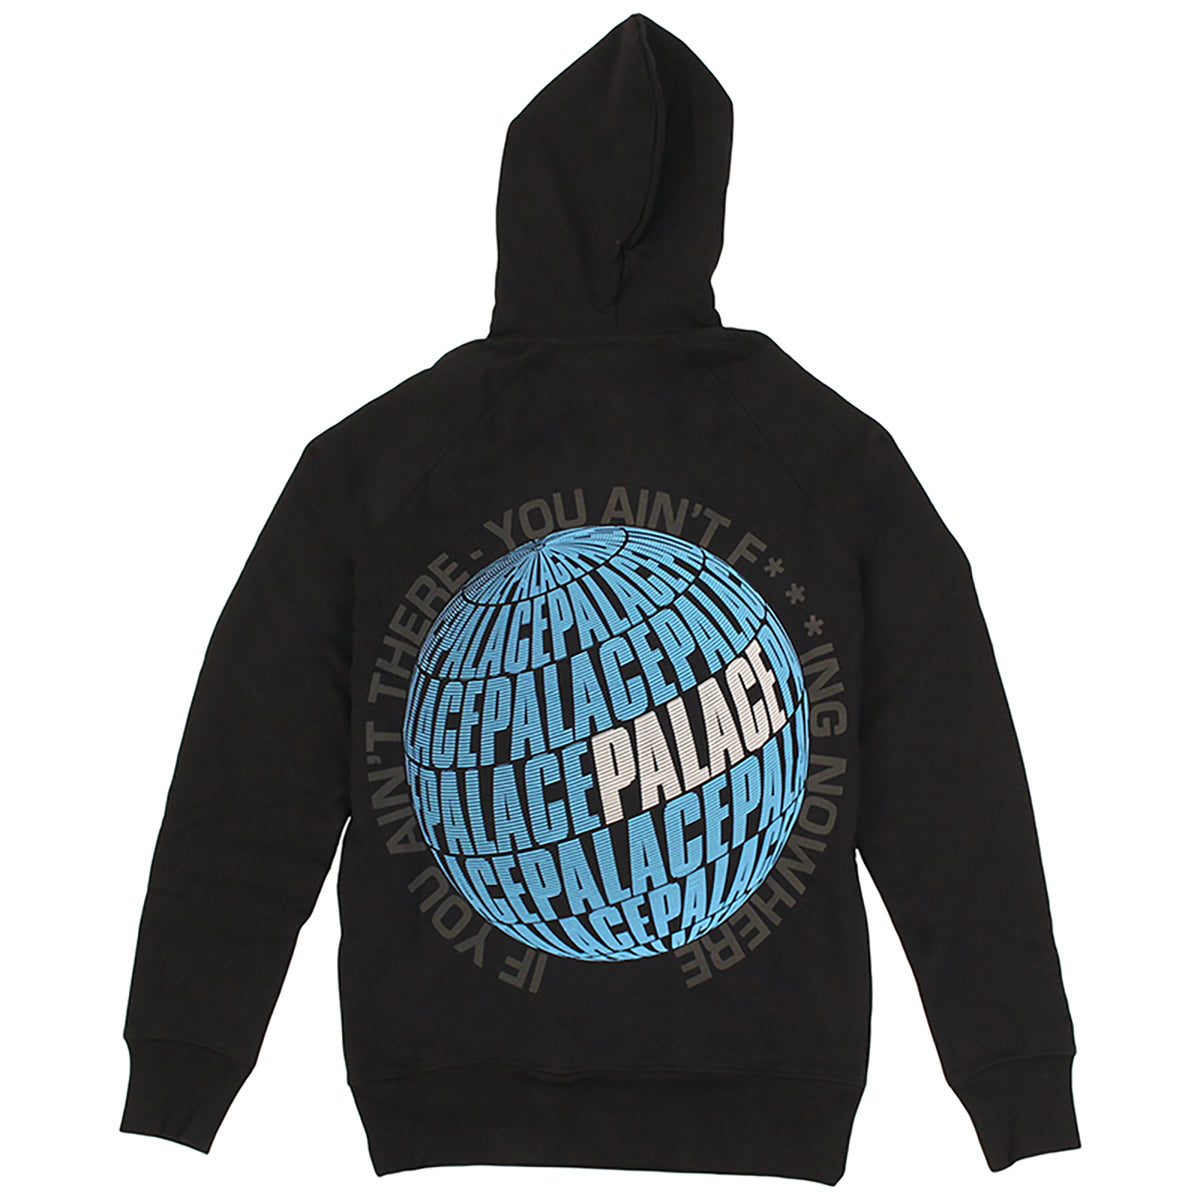 c6e0cc50c1ce If You Ain t There Hoodie in Black by Palace